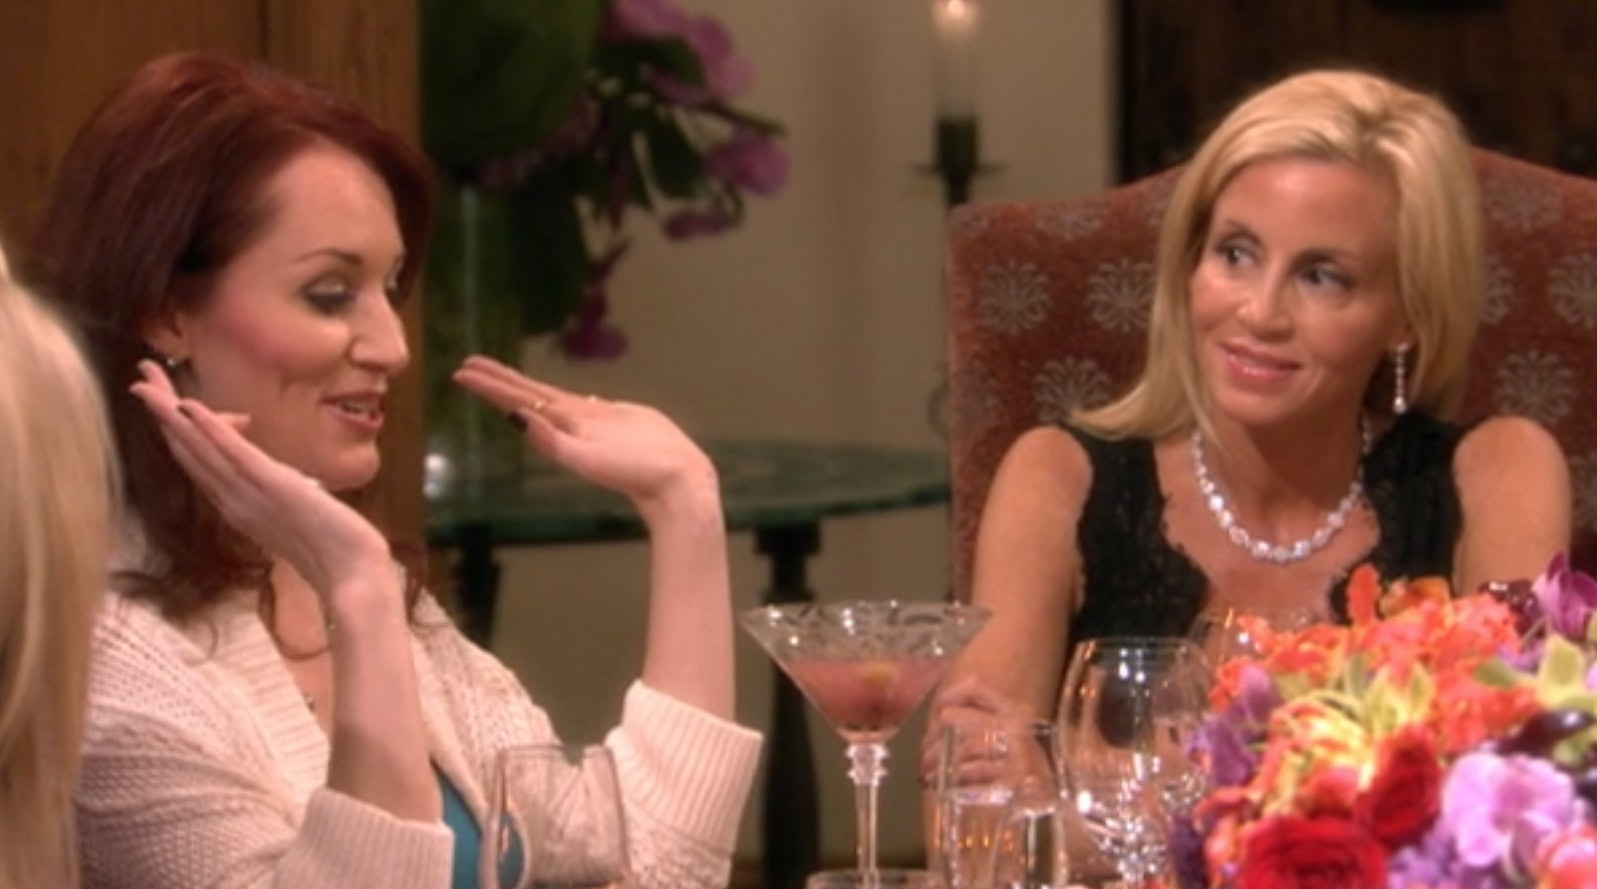 Allison Dubois Libros 19 Real Housewives Psychic Medium Scenes Ranked